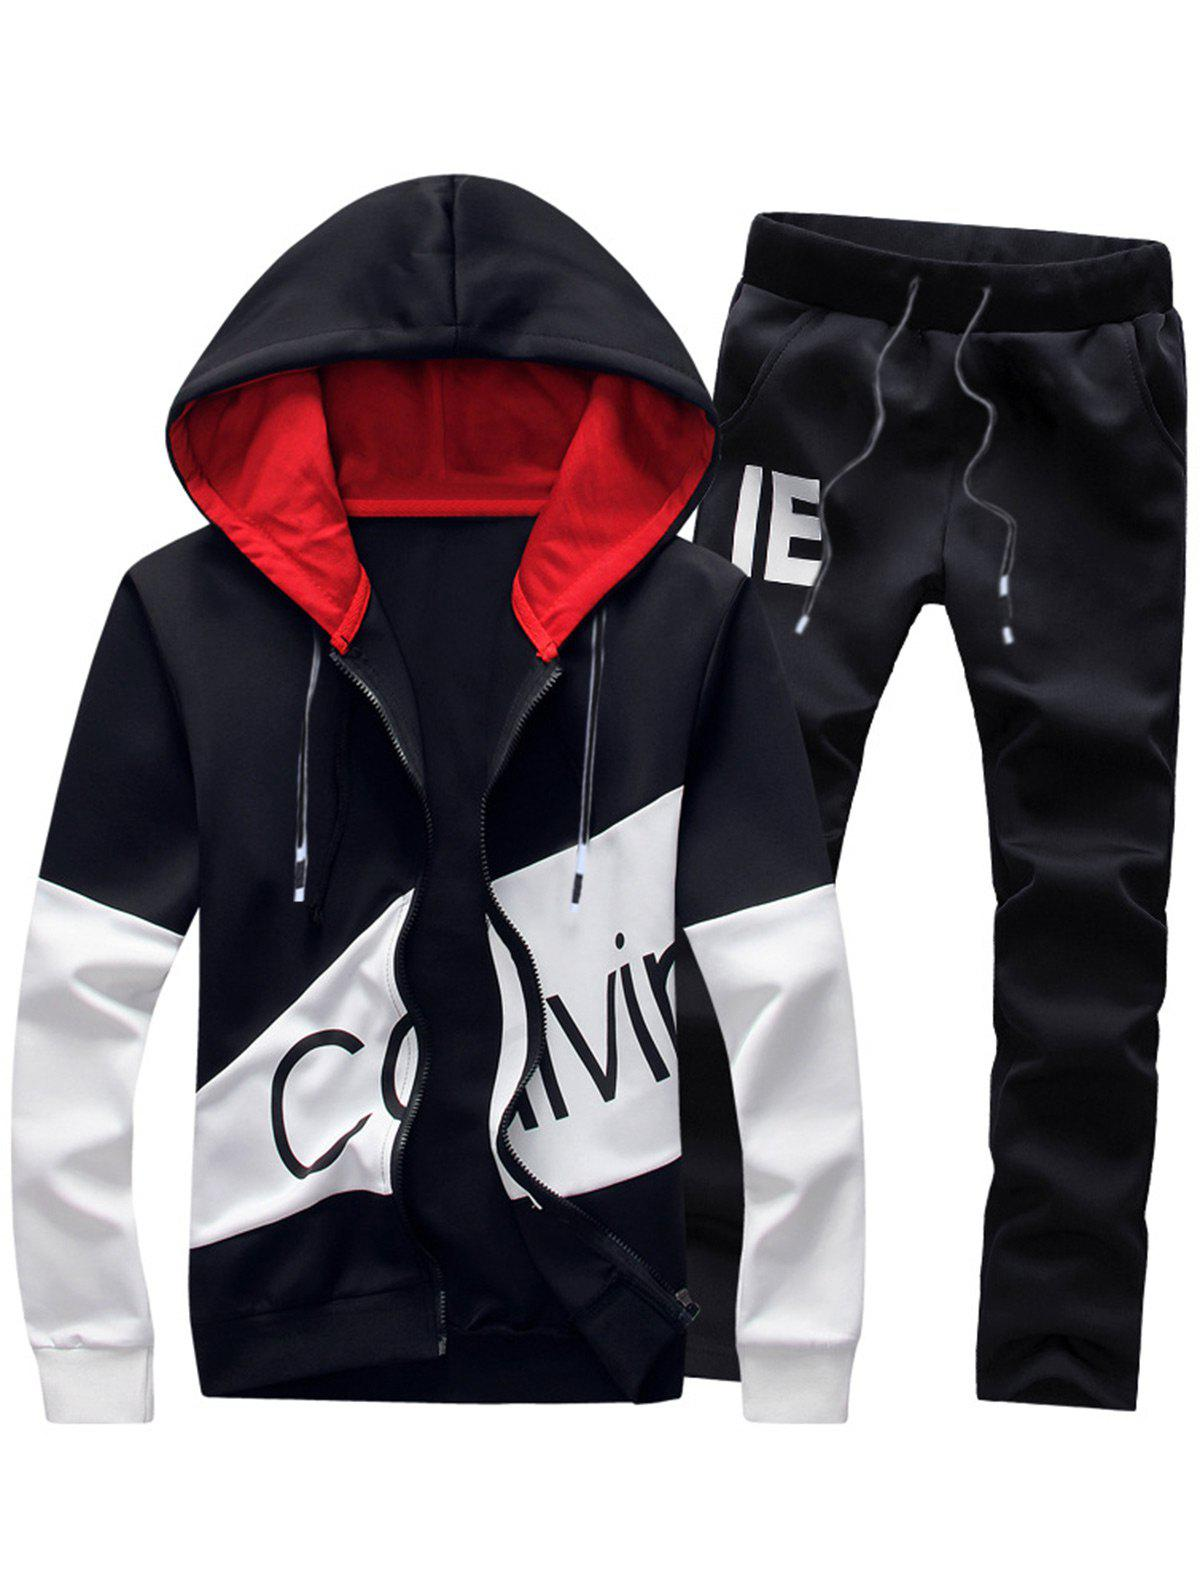 Graphic Color Block Panel Hoodie and Pants TwinsetMEN<br><br>Size: 4XL; Color: BLACK; Material: Cotton,Polyester; Shirt Length: Regular; Sleeve Length: Full; Style: Fashion; Weight: 0.9230kg; Package Contents: 1 x Hoodie  1 x Pants;